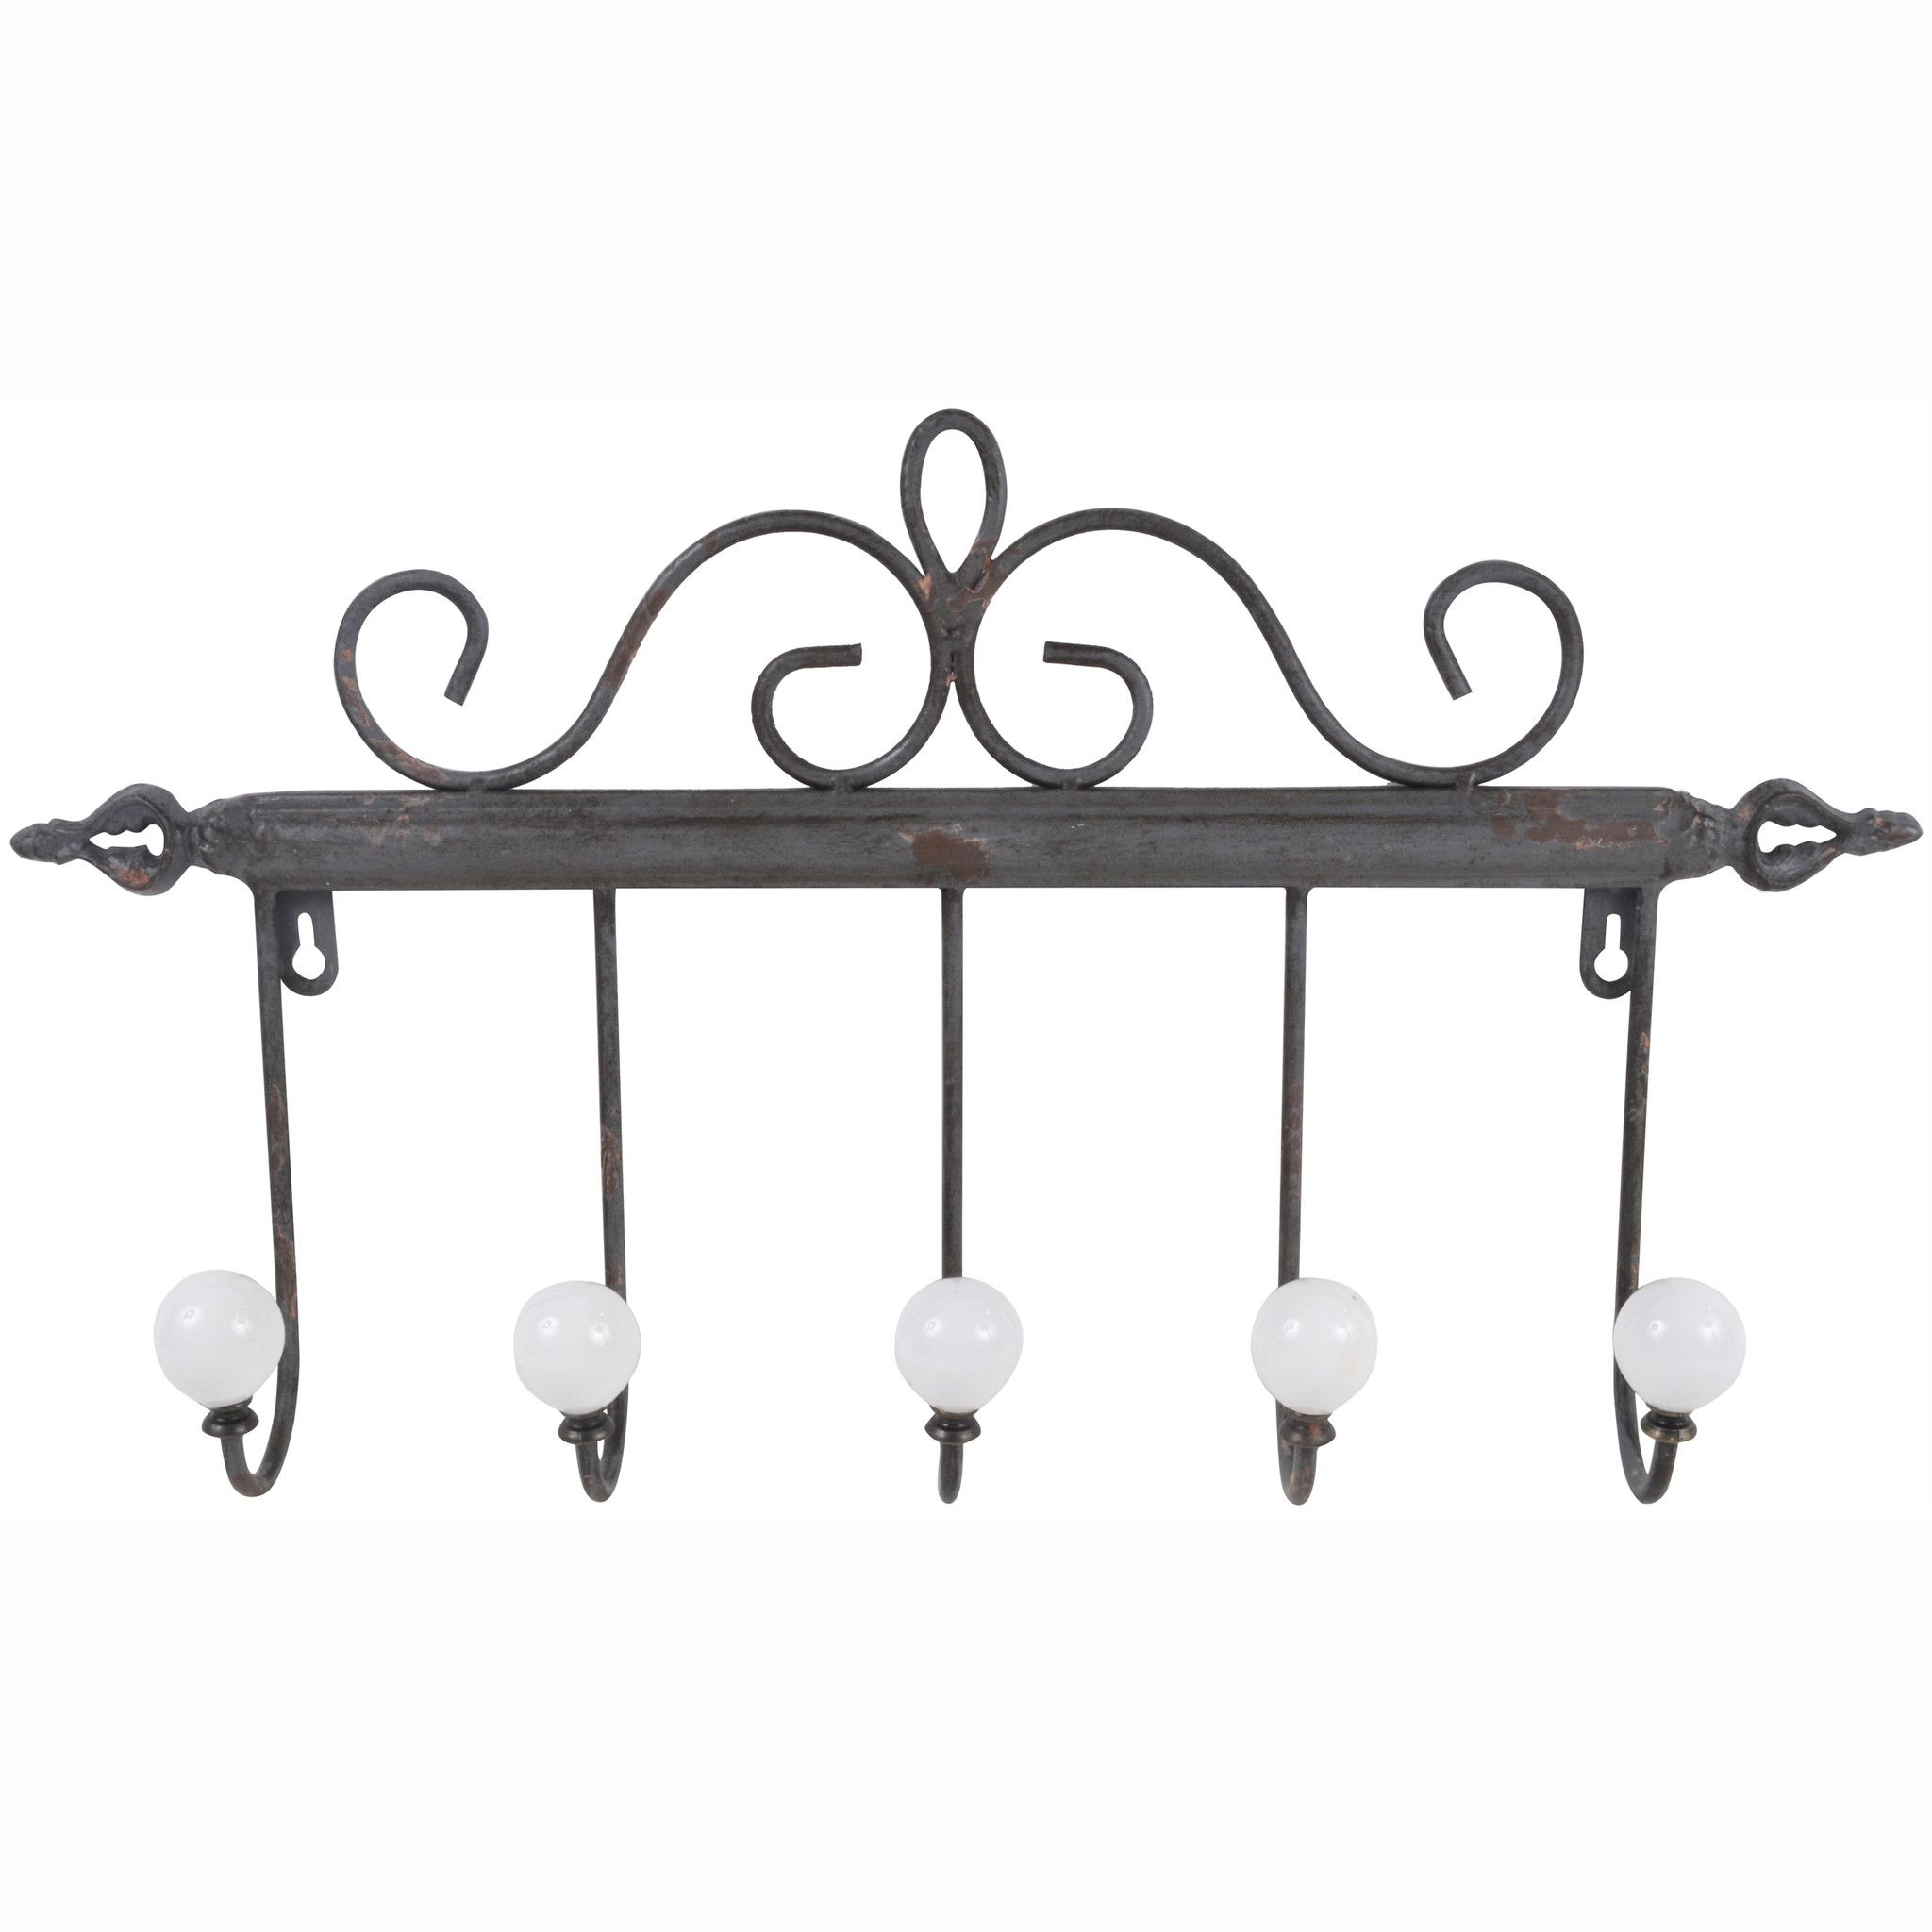 Office Coat Racks SONGMICS Office Coat Racks L - Fizzyinc.co